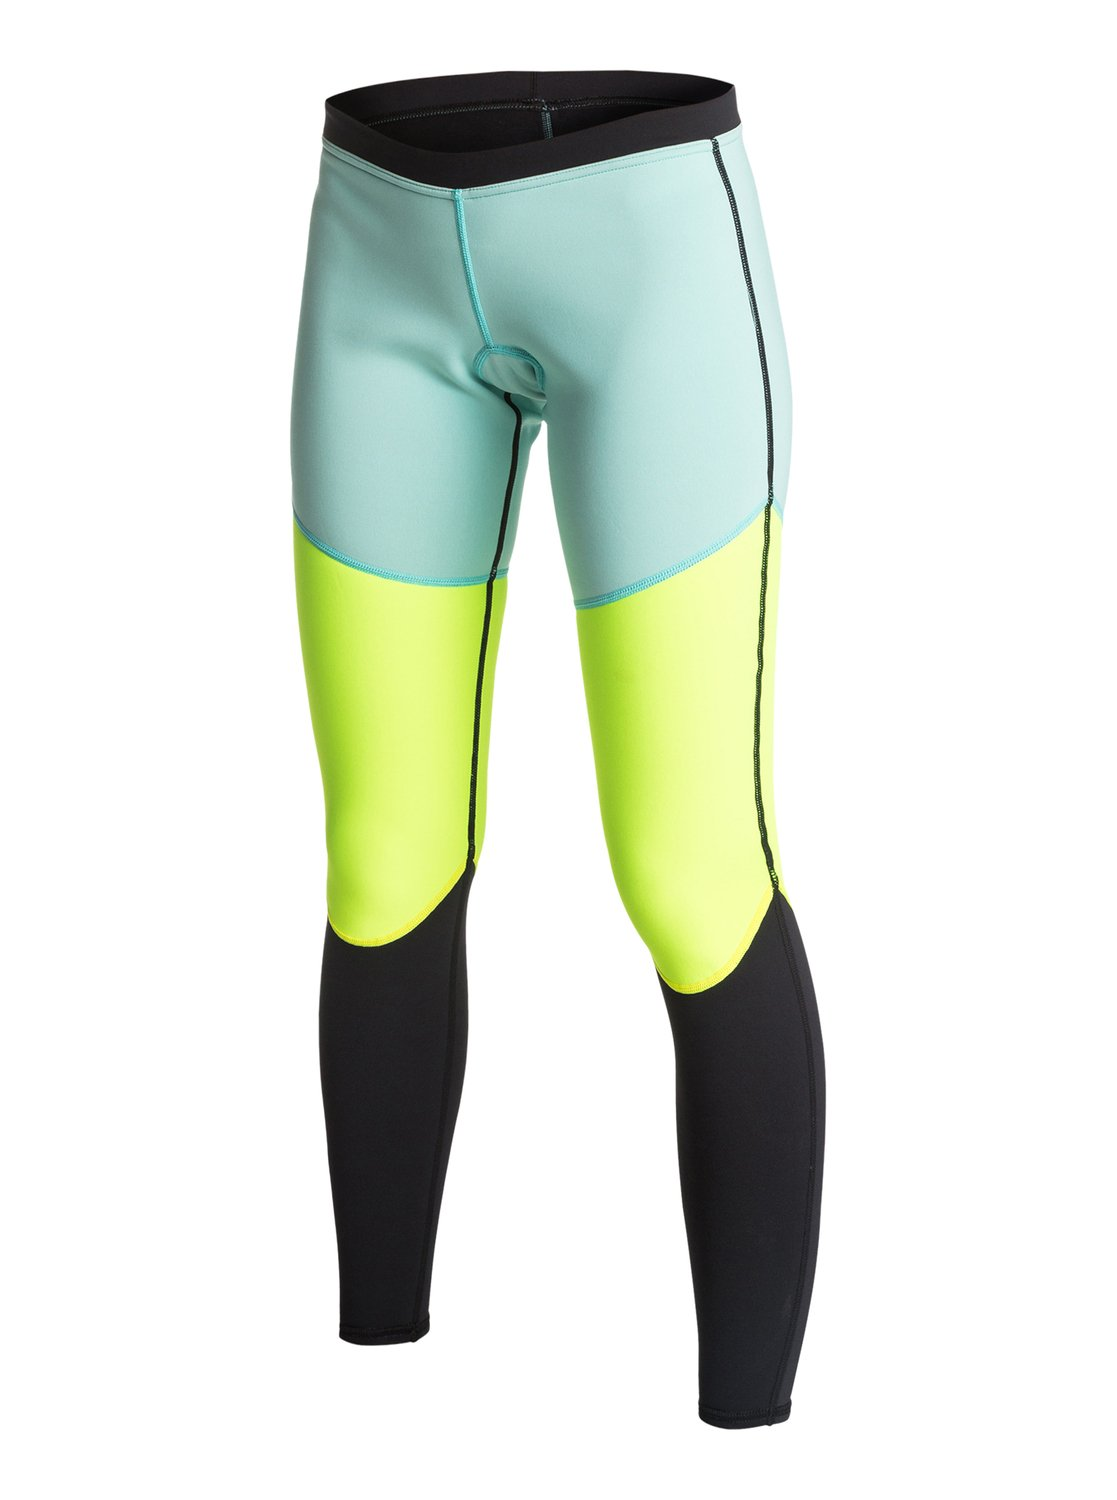 arjx403087_opticnaturesurfpant,v_cbw_frt